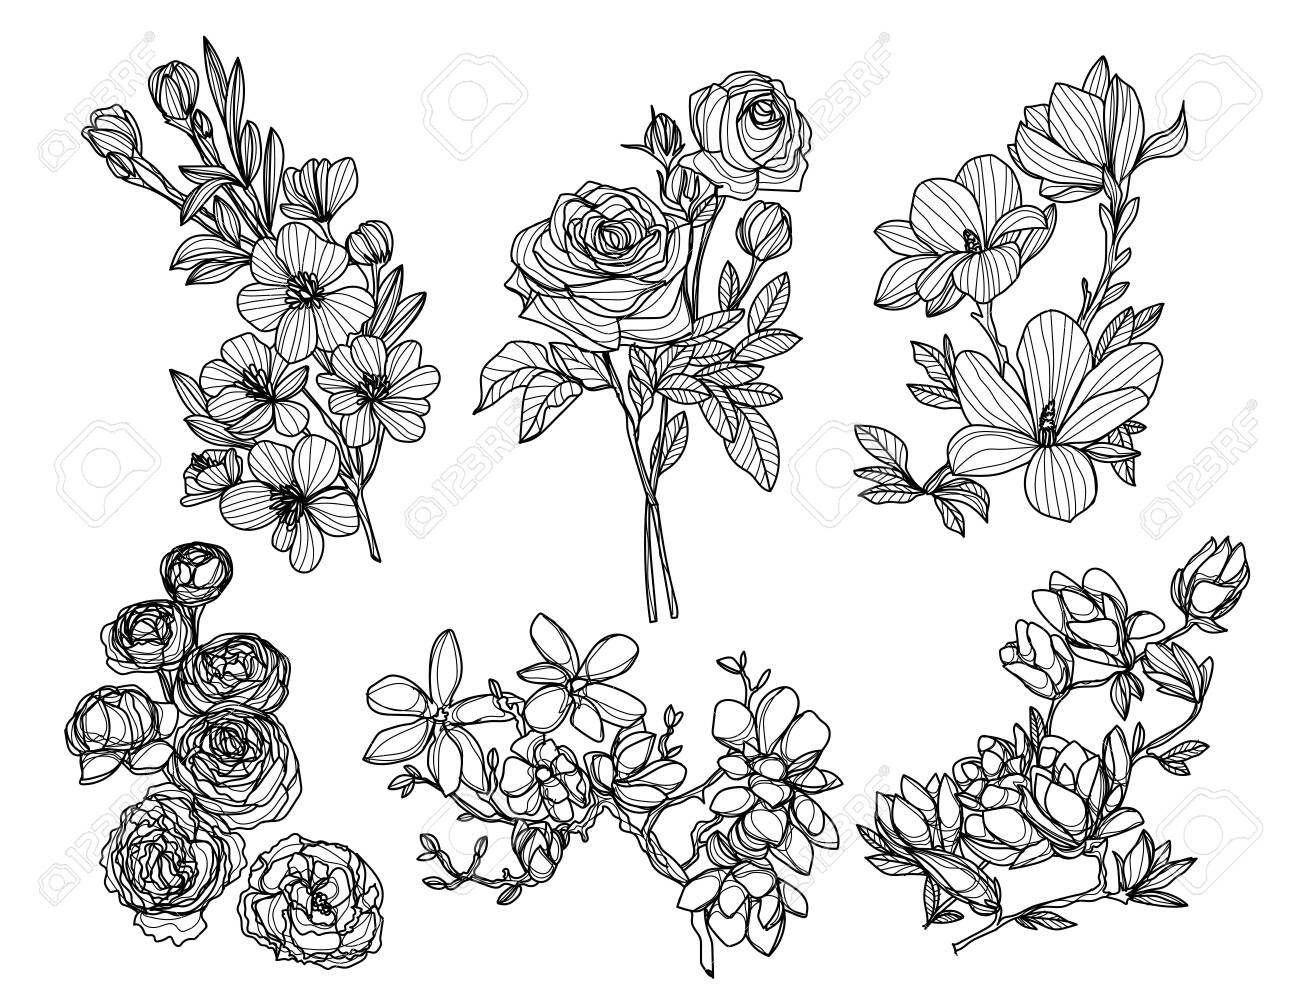 flowers hand drawing and sketch black and white - 137648377